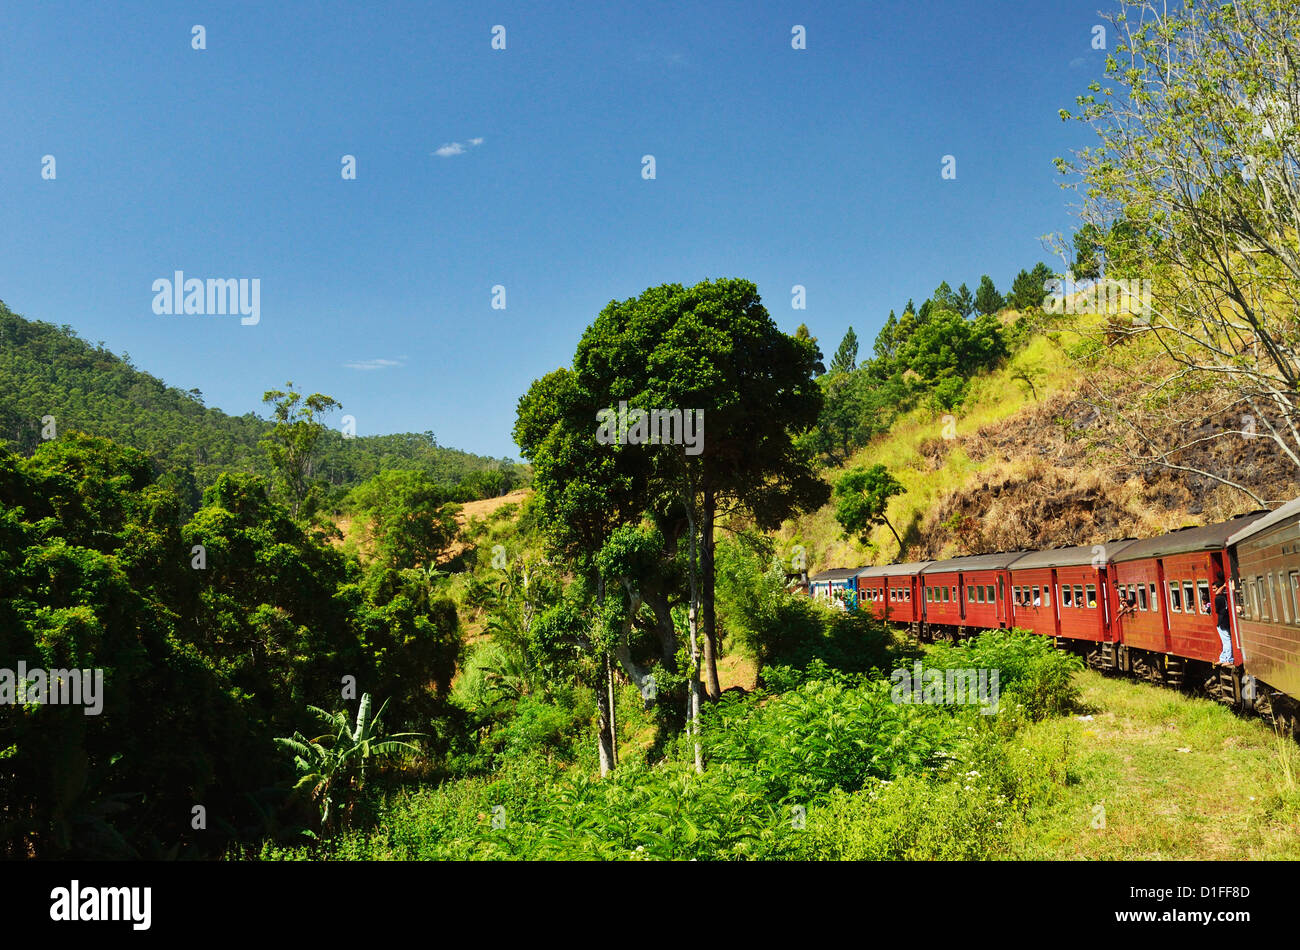 View from train, Central Highlands, Sri Lanka, Asia - Stock Image